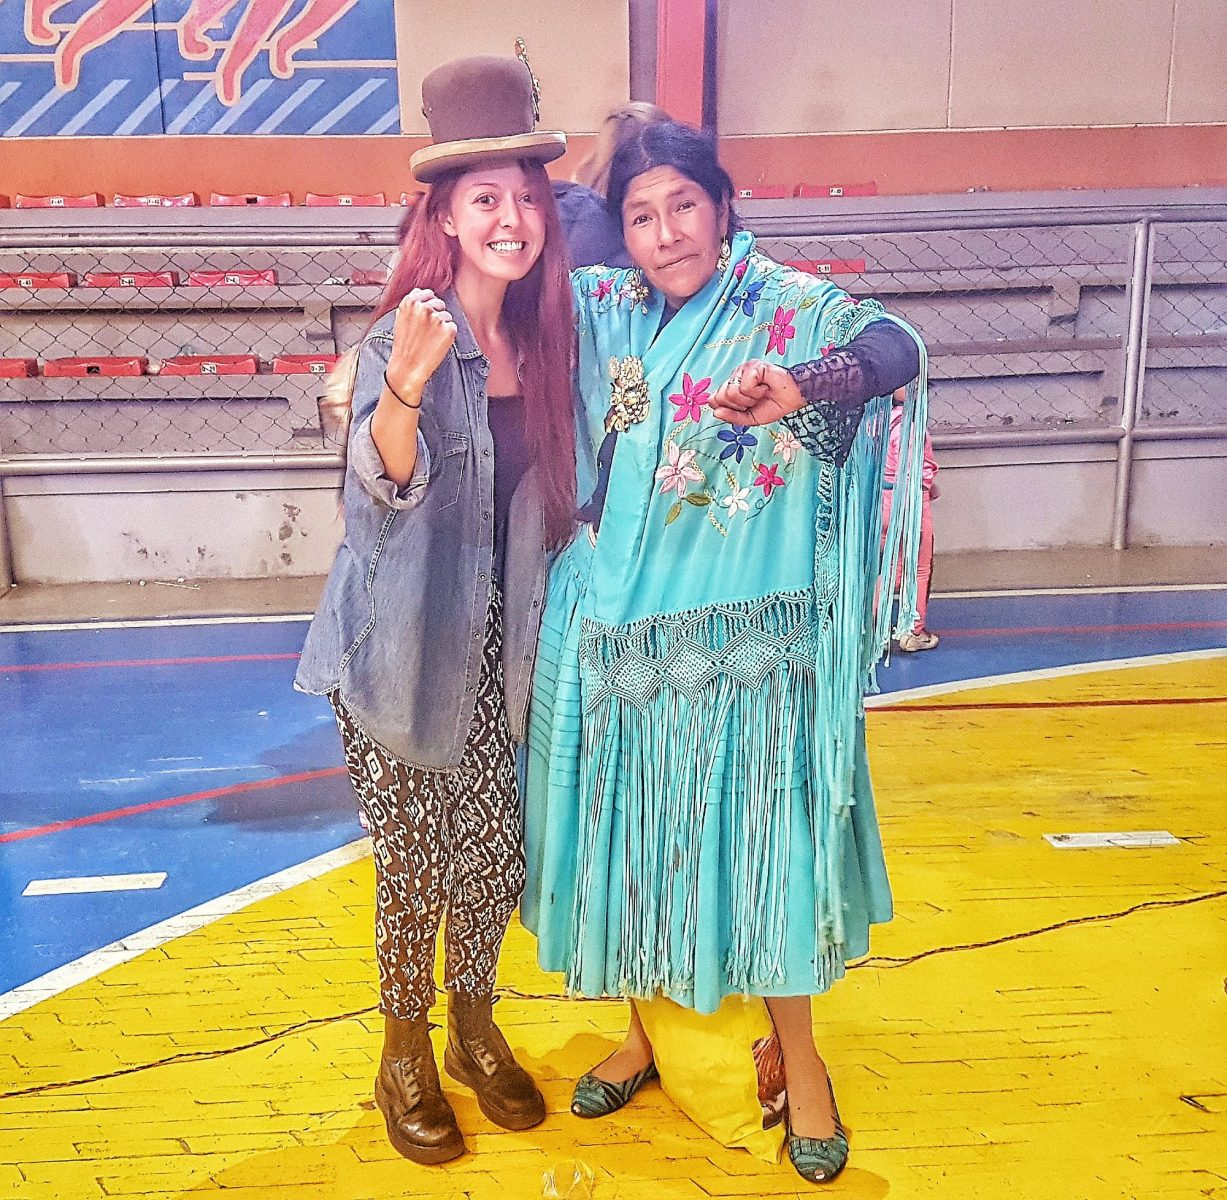 """<img src=""""images/"""" width=""""800"""" height=""""600"""" alt=""""la paz - 20171105 1818490 01531868869 - Bolivia: The Cholitas, Prisons and Witches of La Paz"""">"""